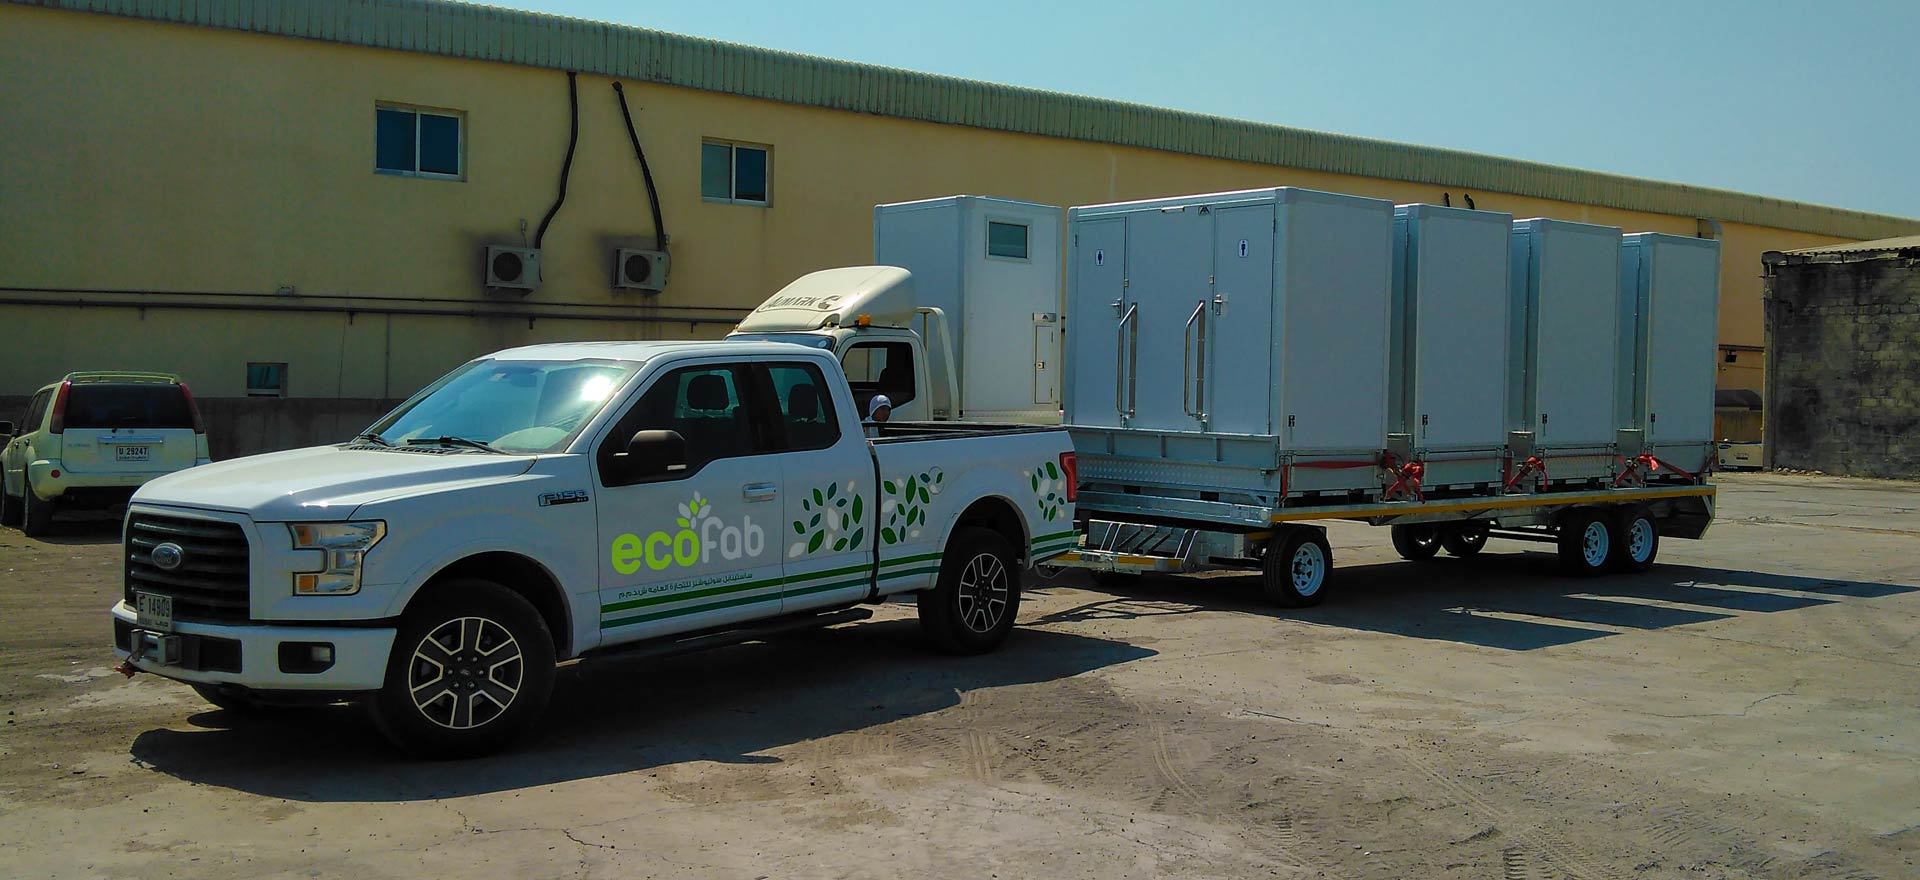 mobile toilets dubai UAE